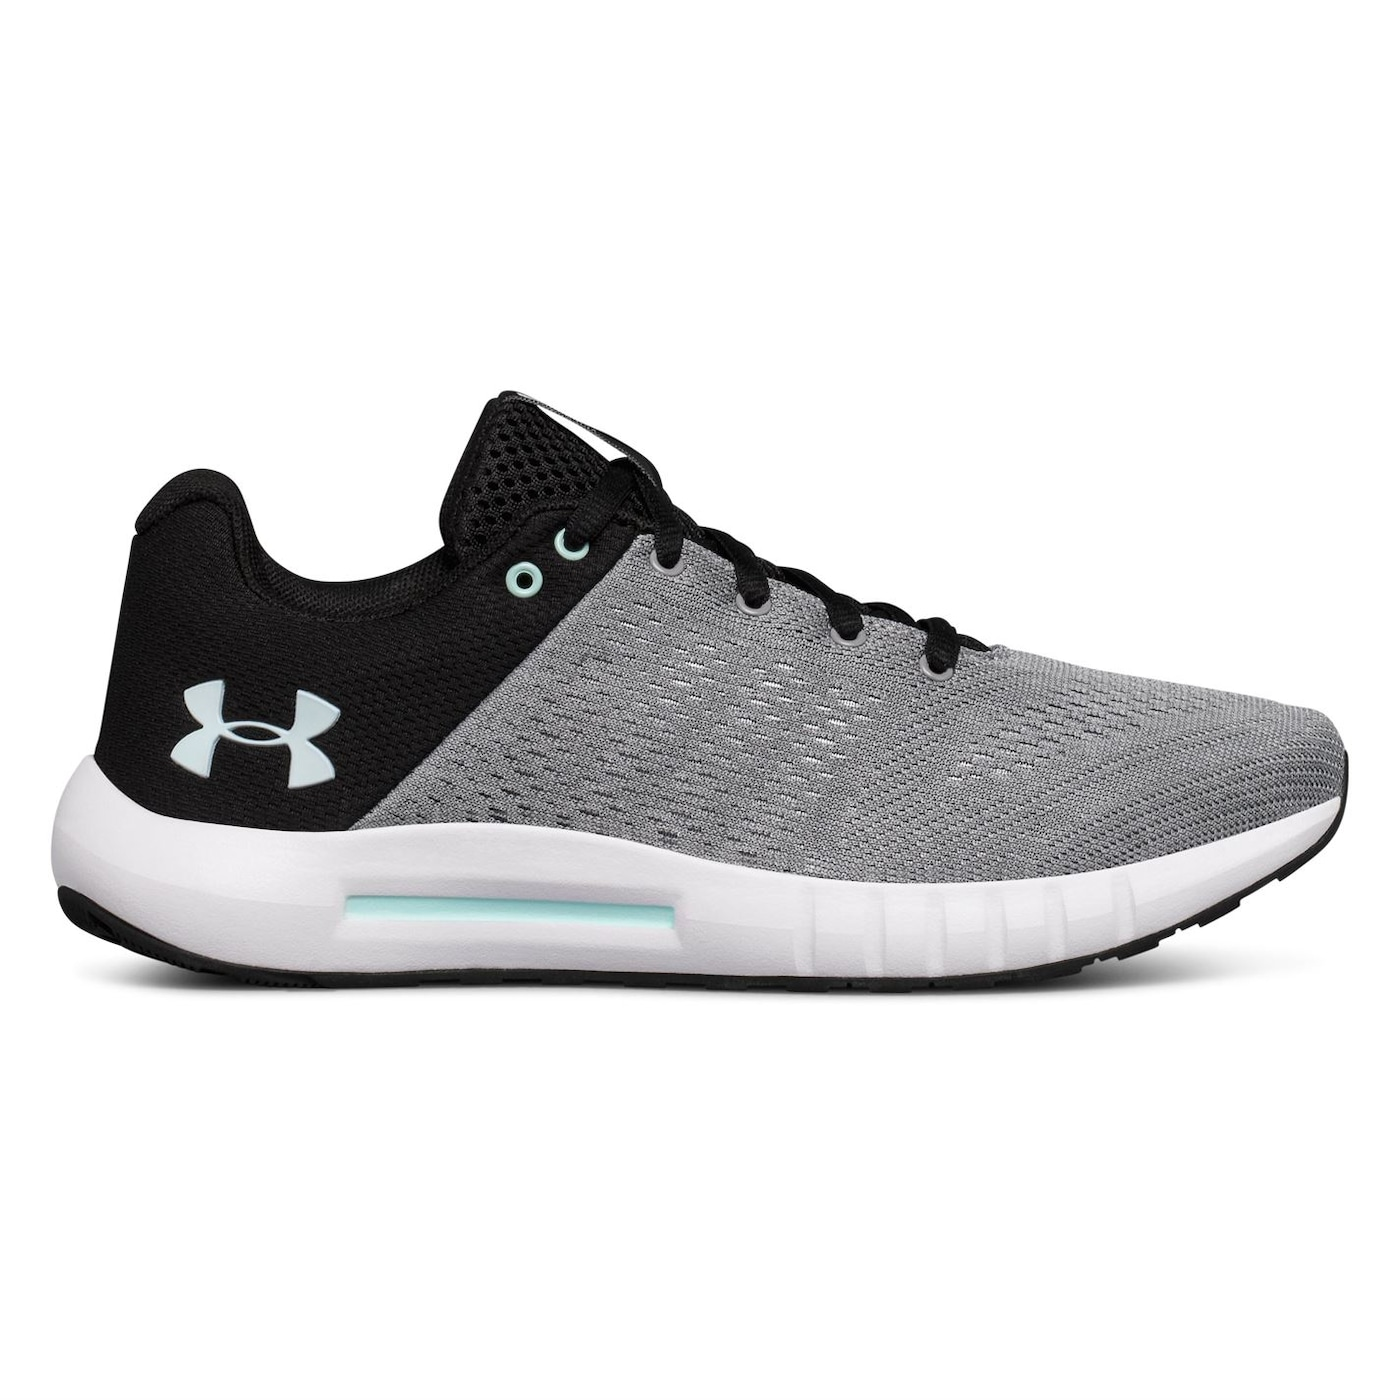 Under Armour Pursuit Trainers Ladies